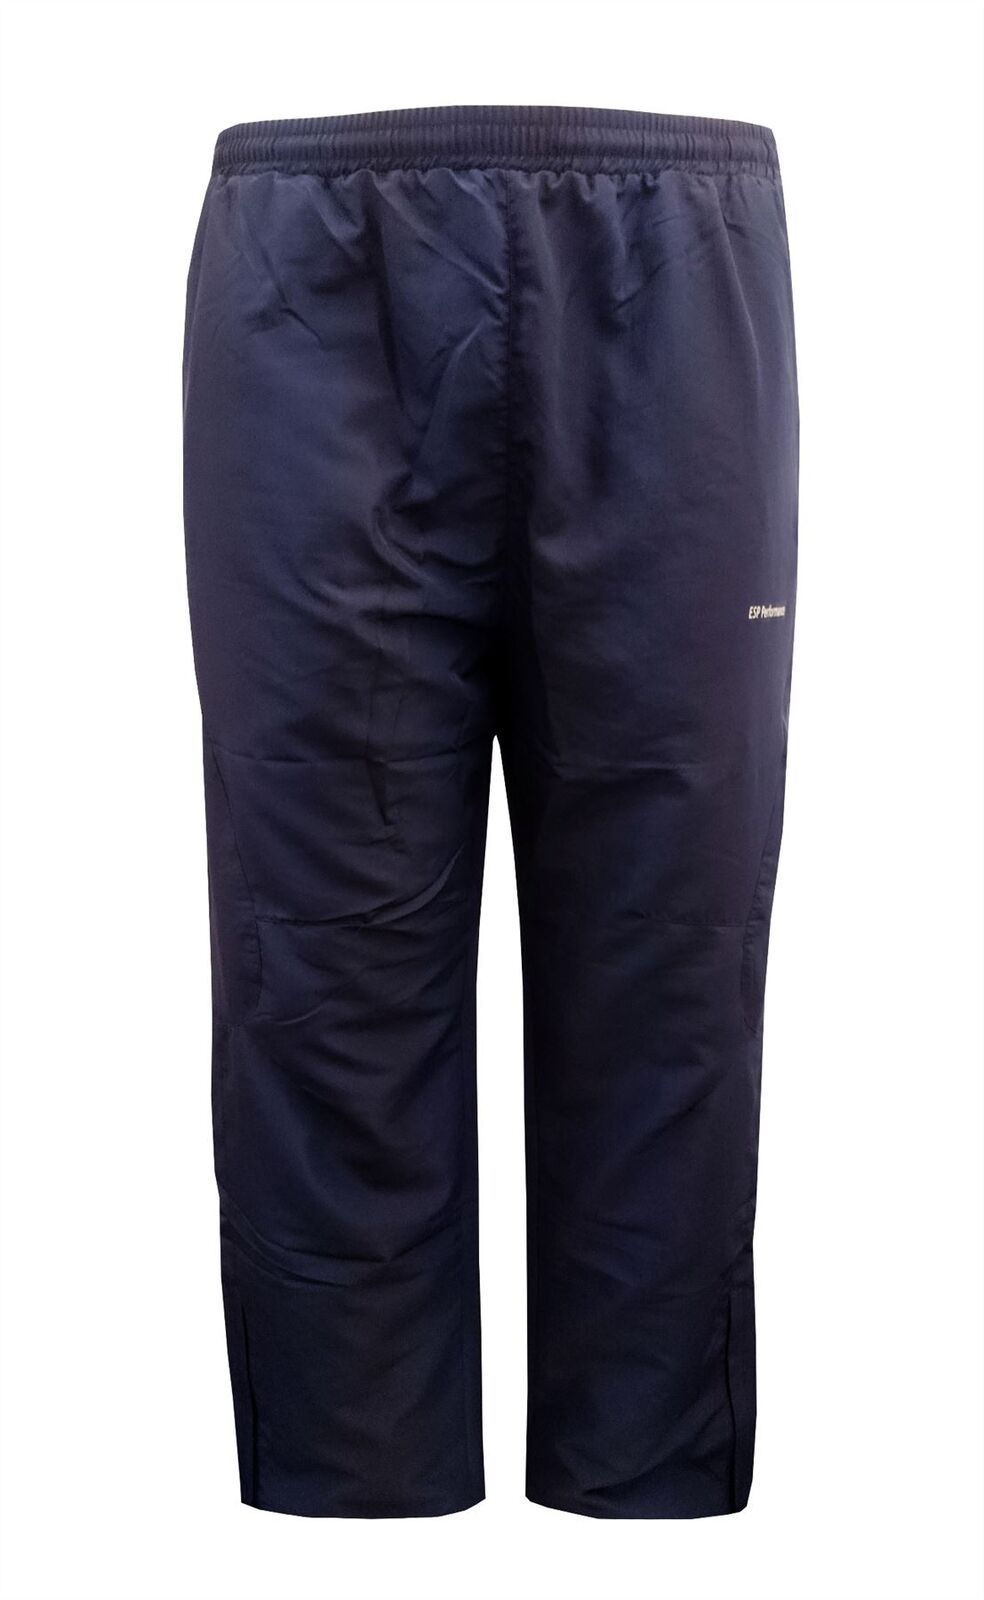 Espionage Mens Performance Trouser (074) in Navy in Size 2XL to 8XL, L29 31